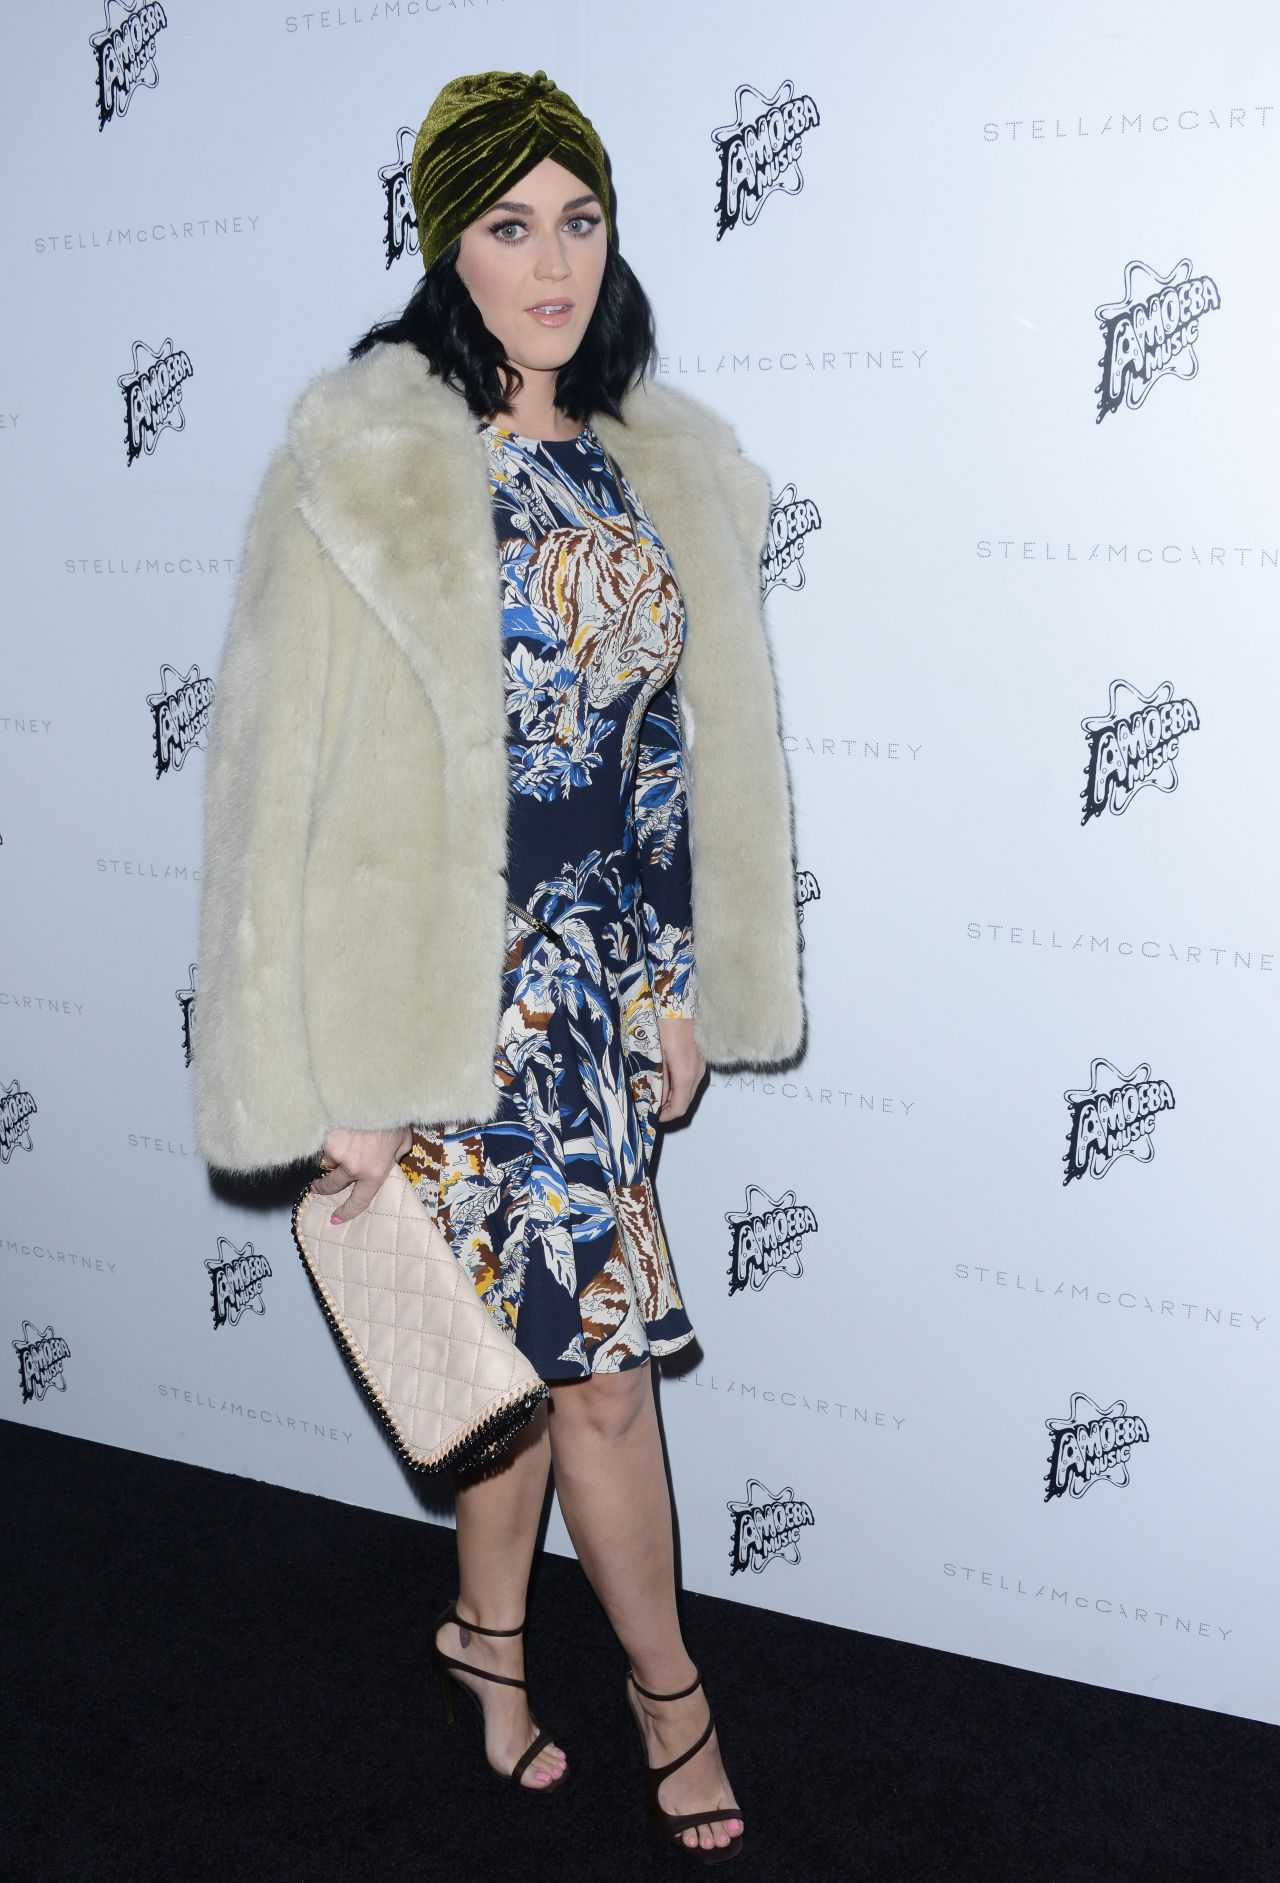 katy-perry-stella-mccartney-autumn-2016-presentation-in-los-angeles-ca-24